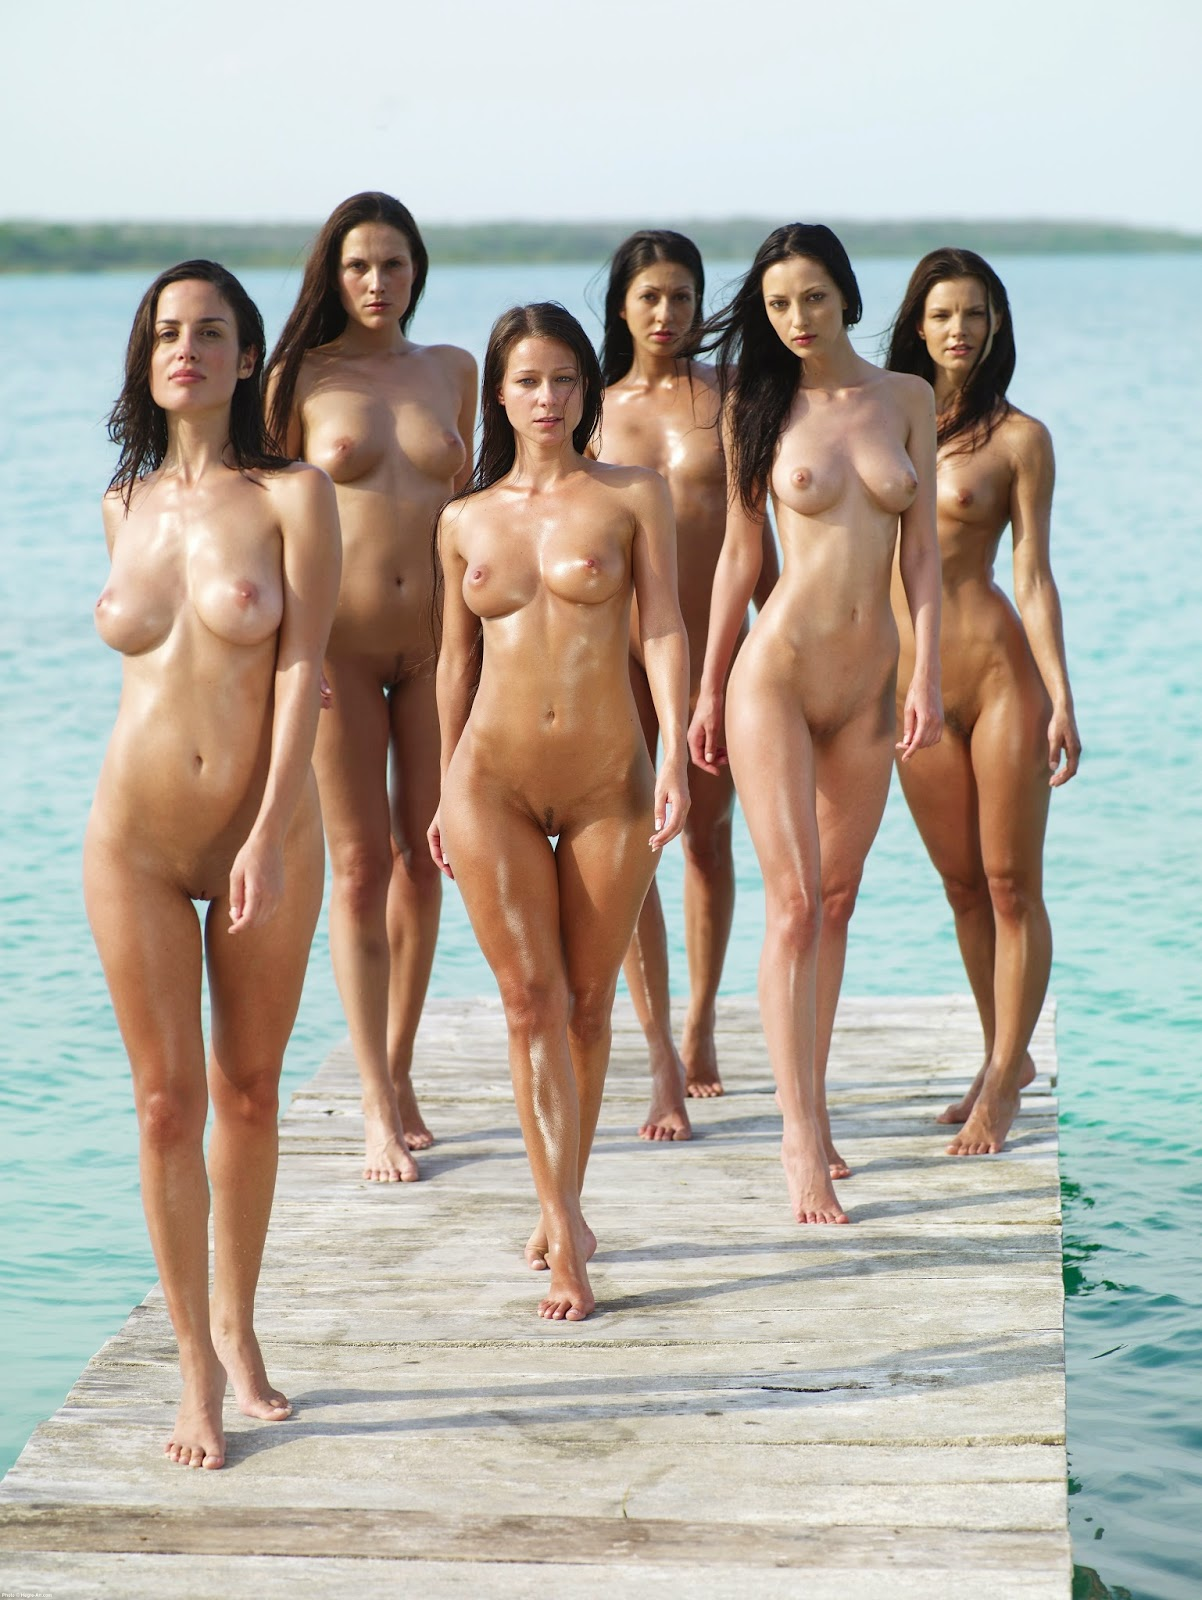 The world Sexy girls naked in groups remarkable, rather